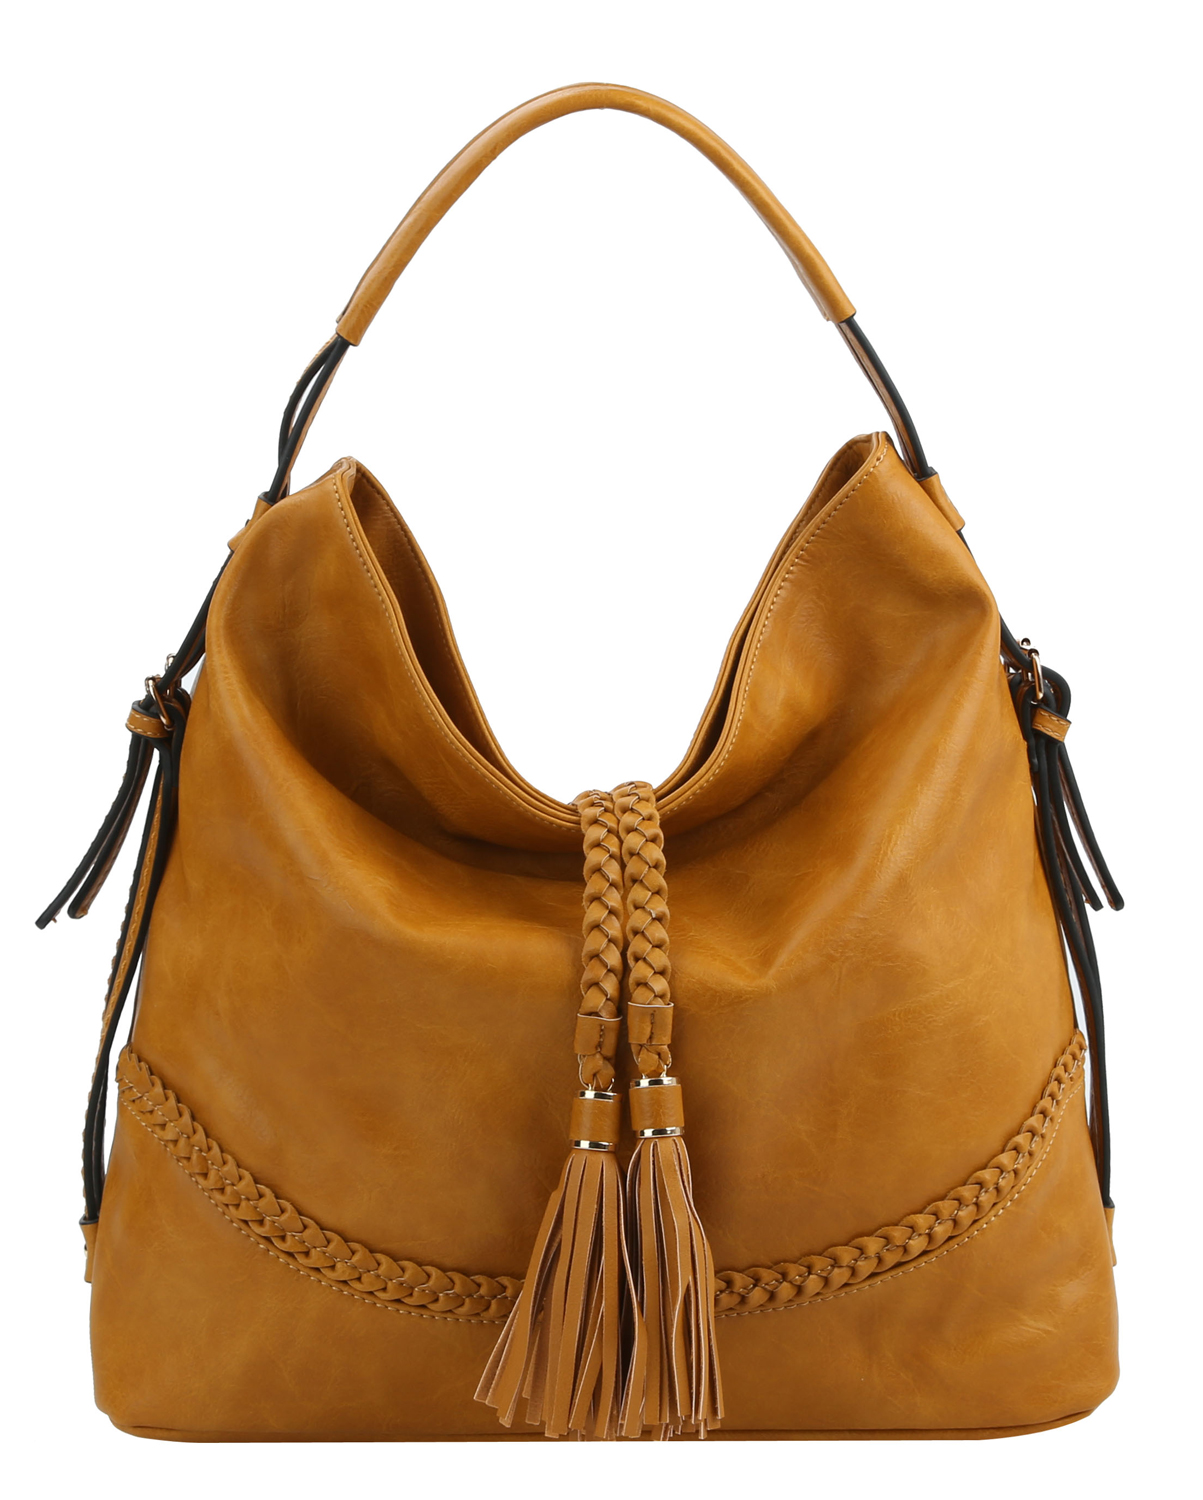 AS0001(MU)-wholesale-handbag-tassel-fringe-braided-leatherette-strap-vegan-flap-solid-color-extended-belt-gold(0).jpg